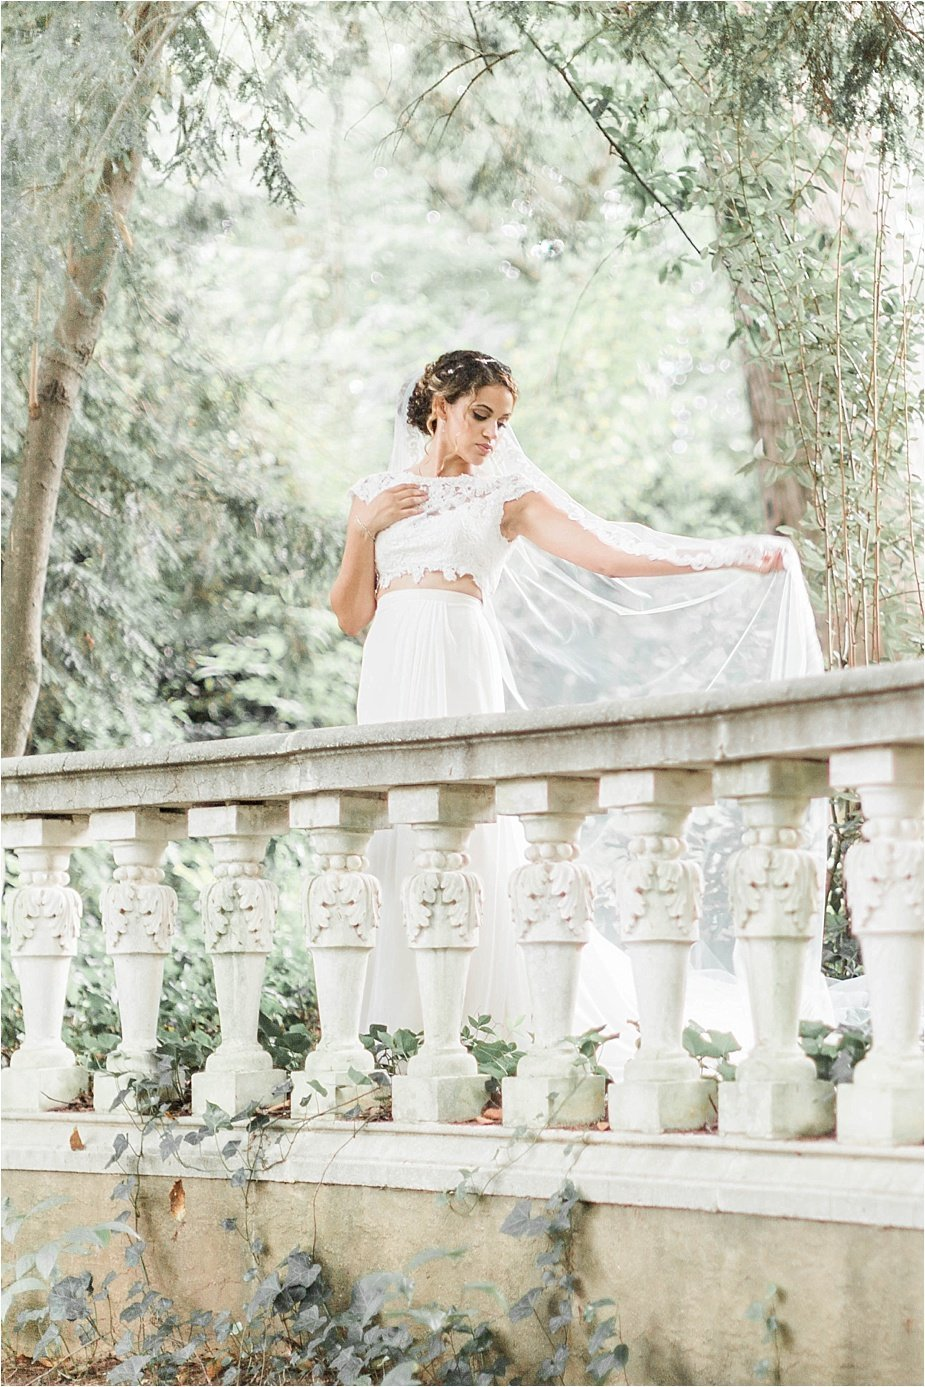 Outdoor Atlanta Bridal Portrait Photography Cator Woolford